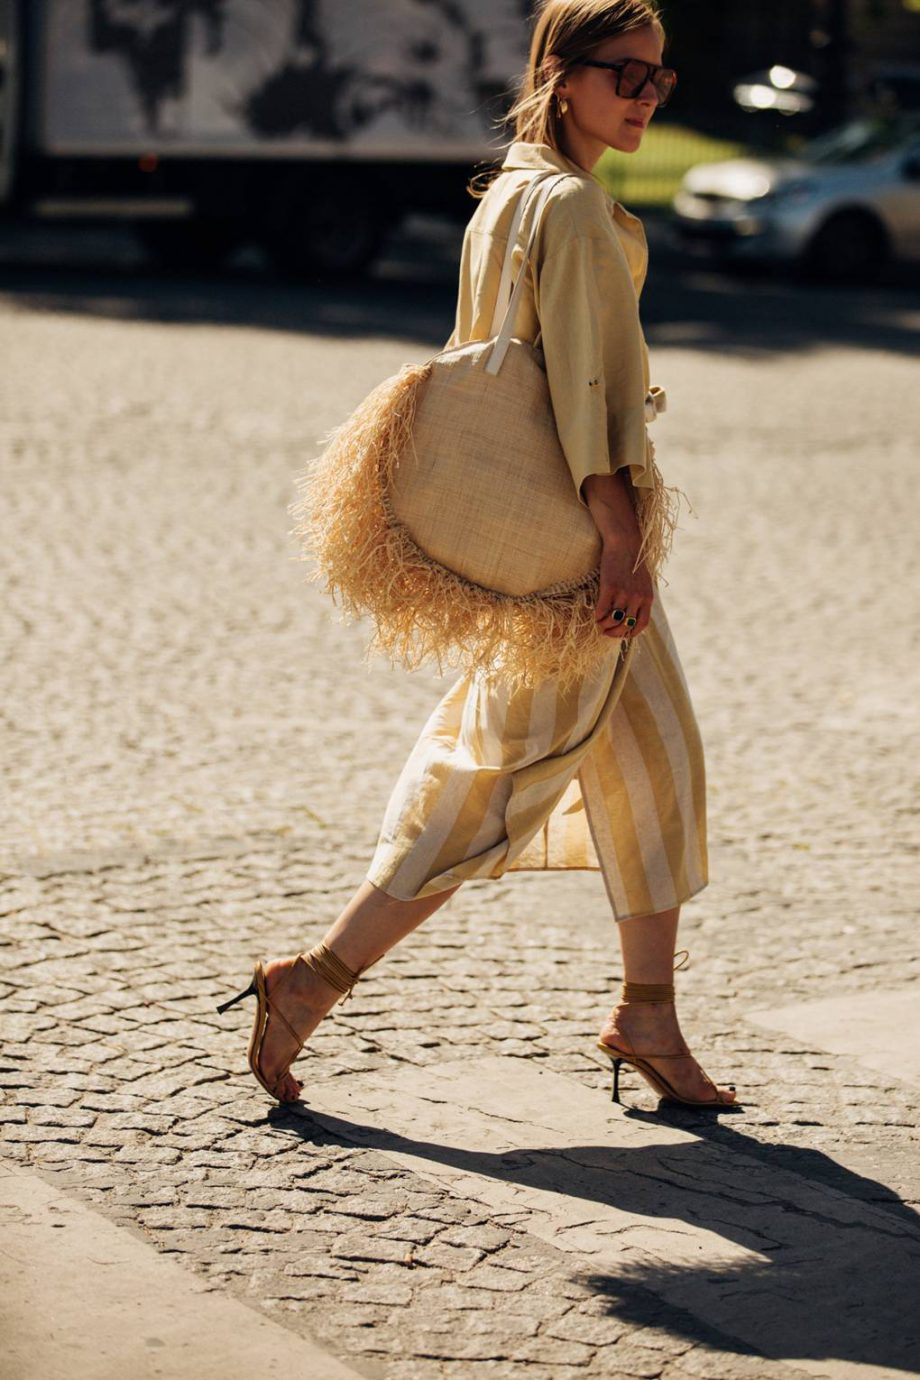 Vogue UK – The Best Street Style From Couture Fashion Week | 06.07.2019